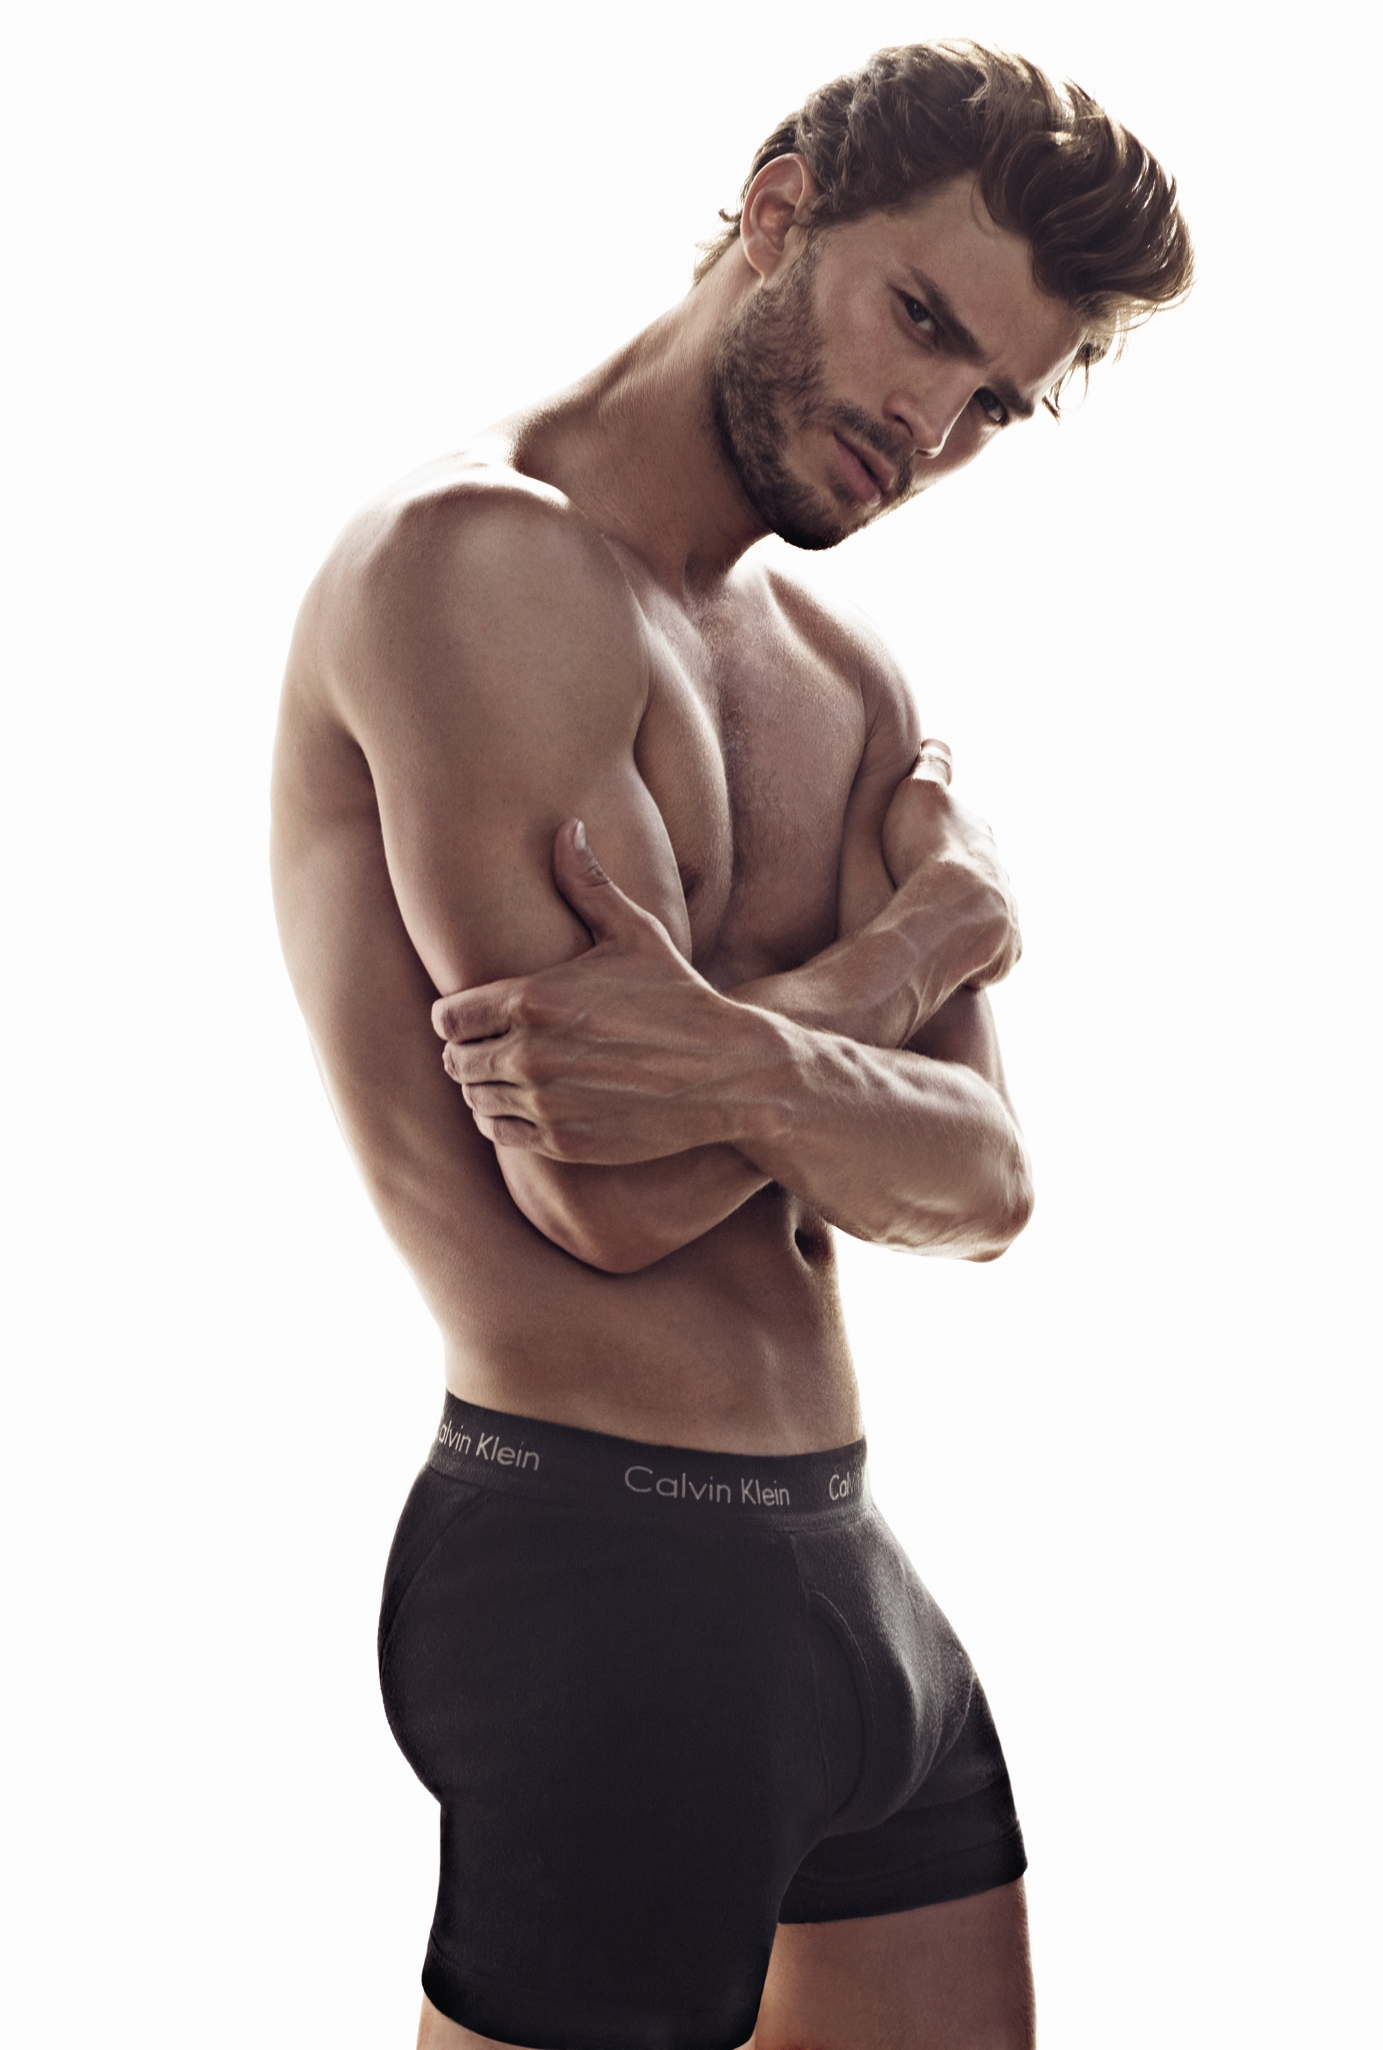 Jamie-Dornan-naked-nude-model-actor-8